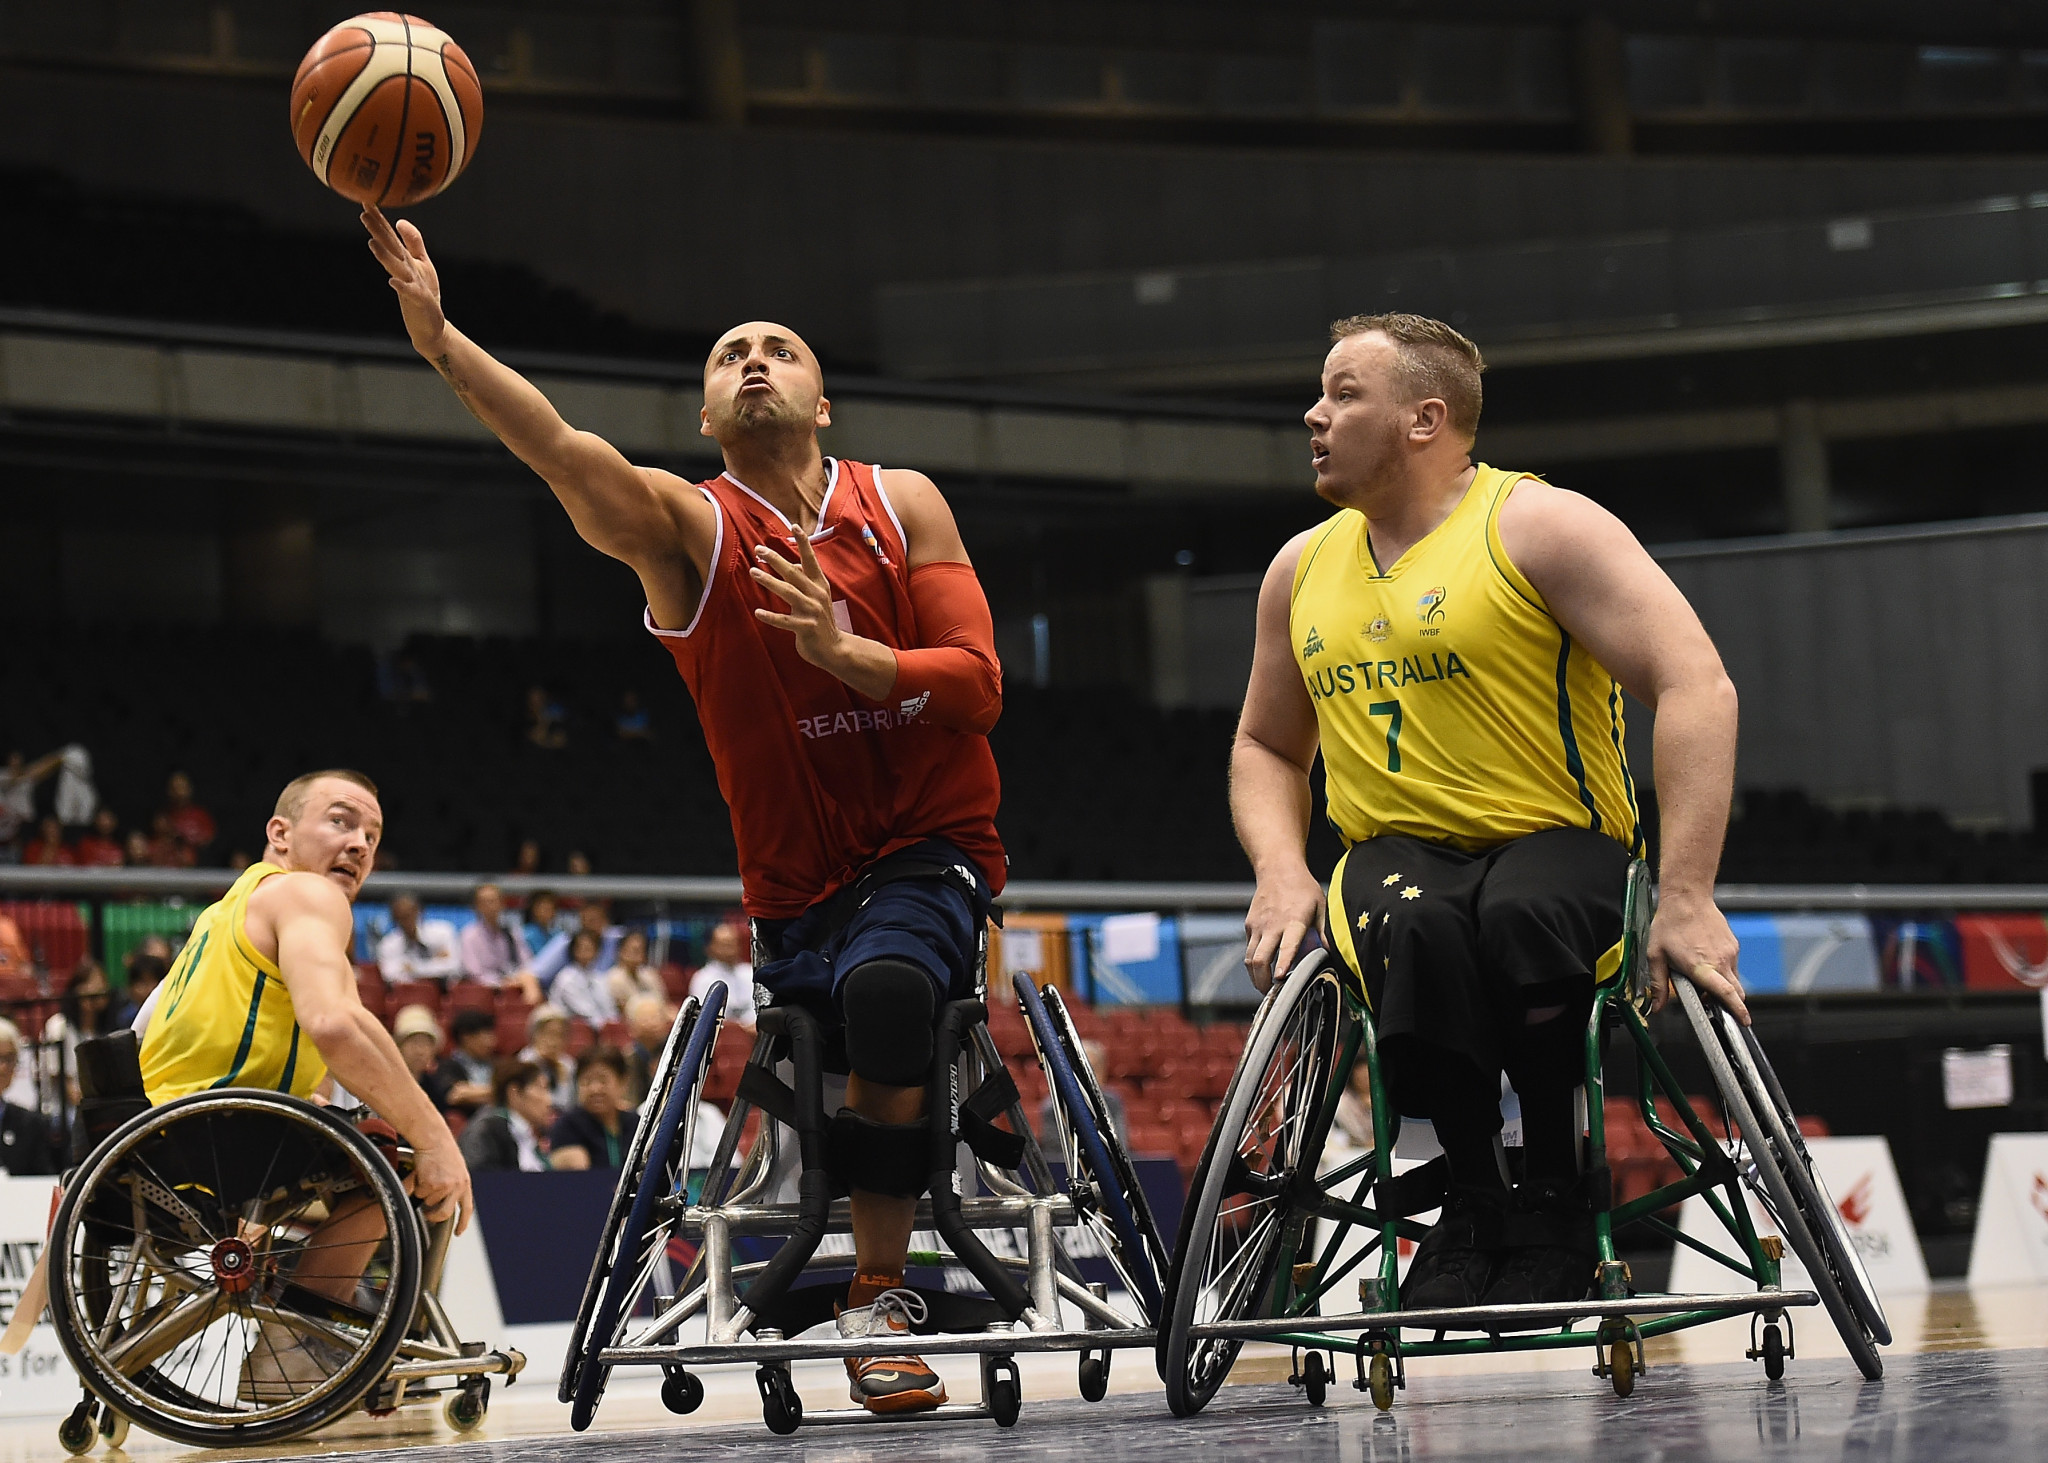 IWBF to broadcast classic games online given lack of new action